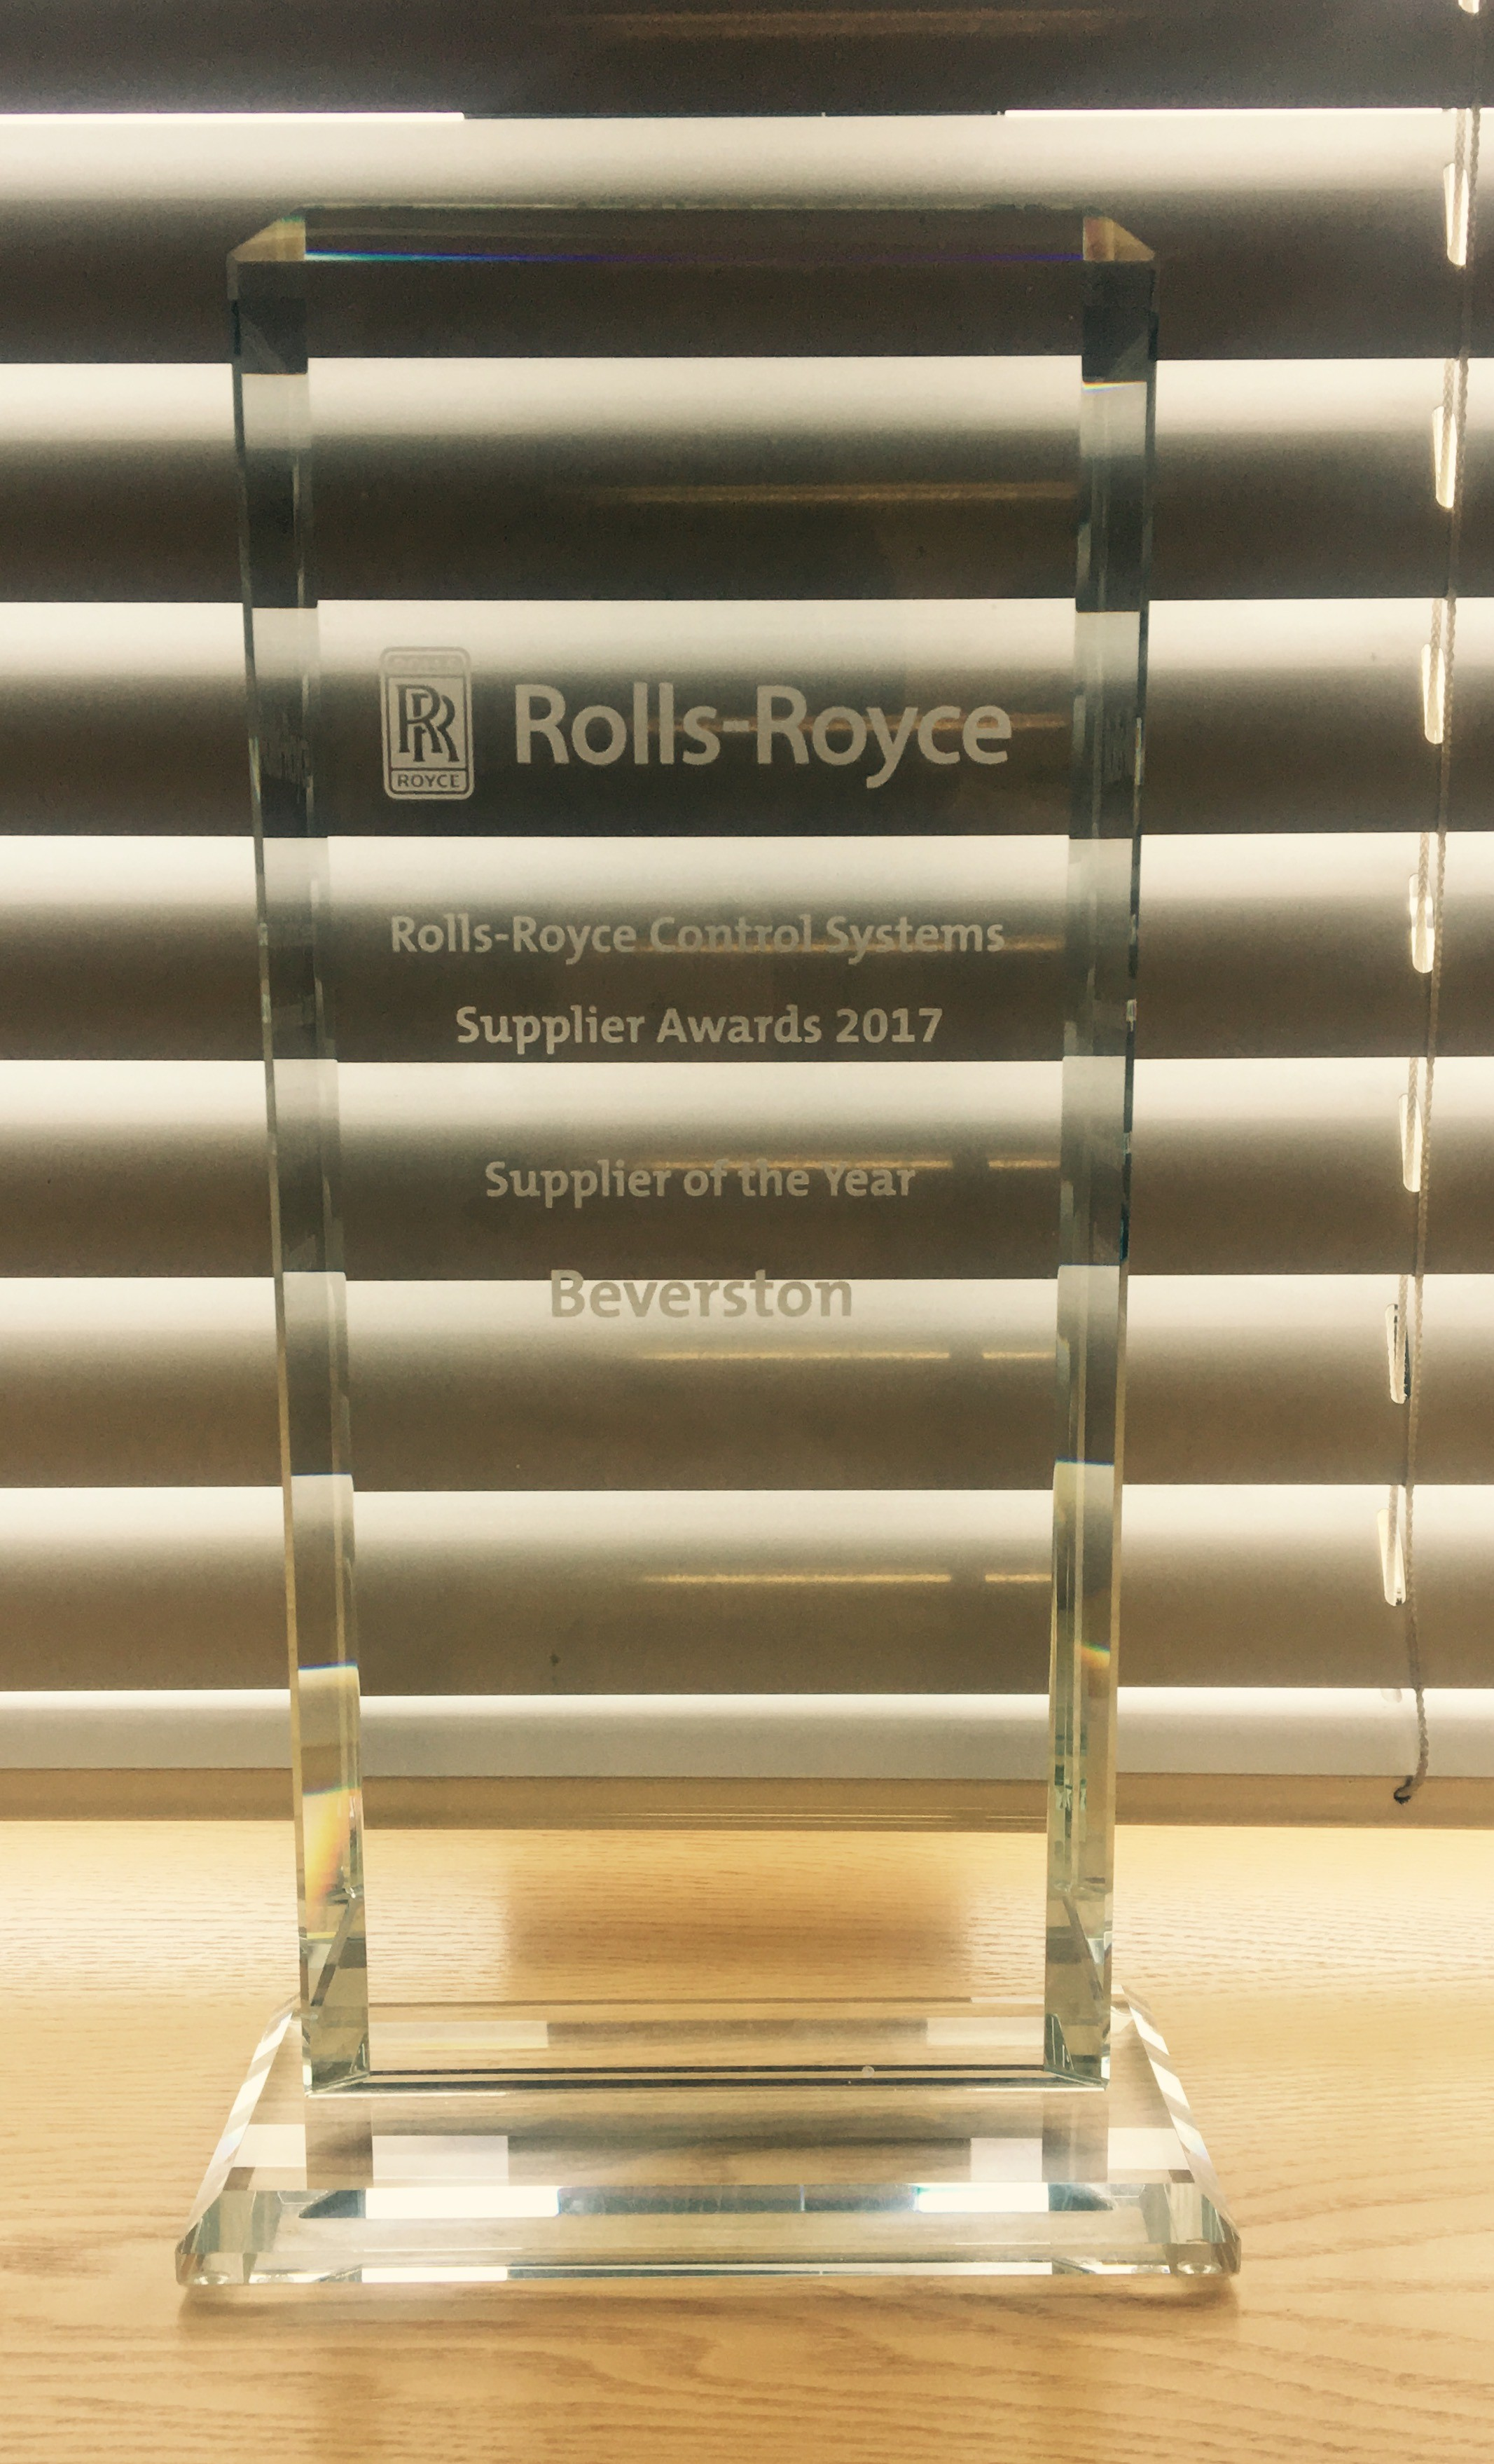 Rolls-Royce CS Supplier Award 2017 edited